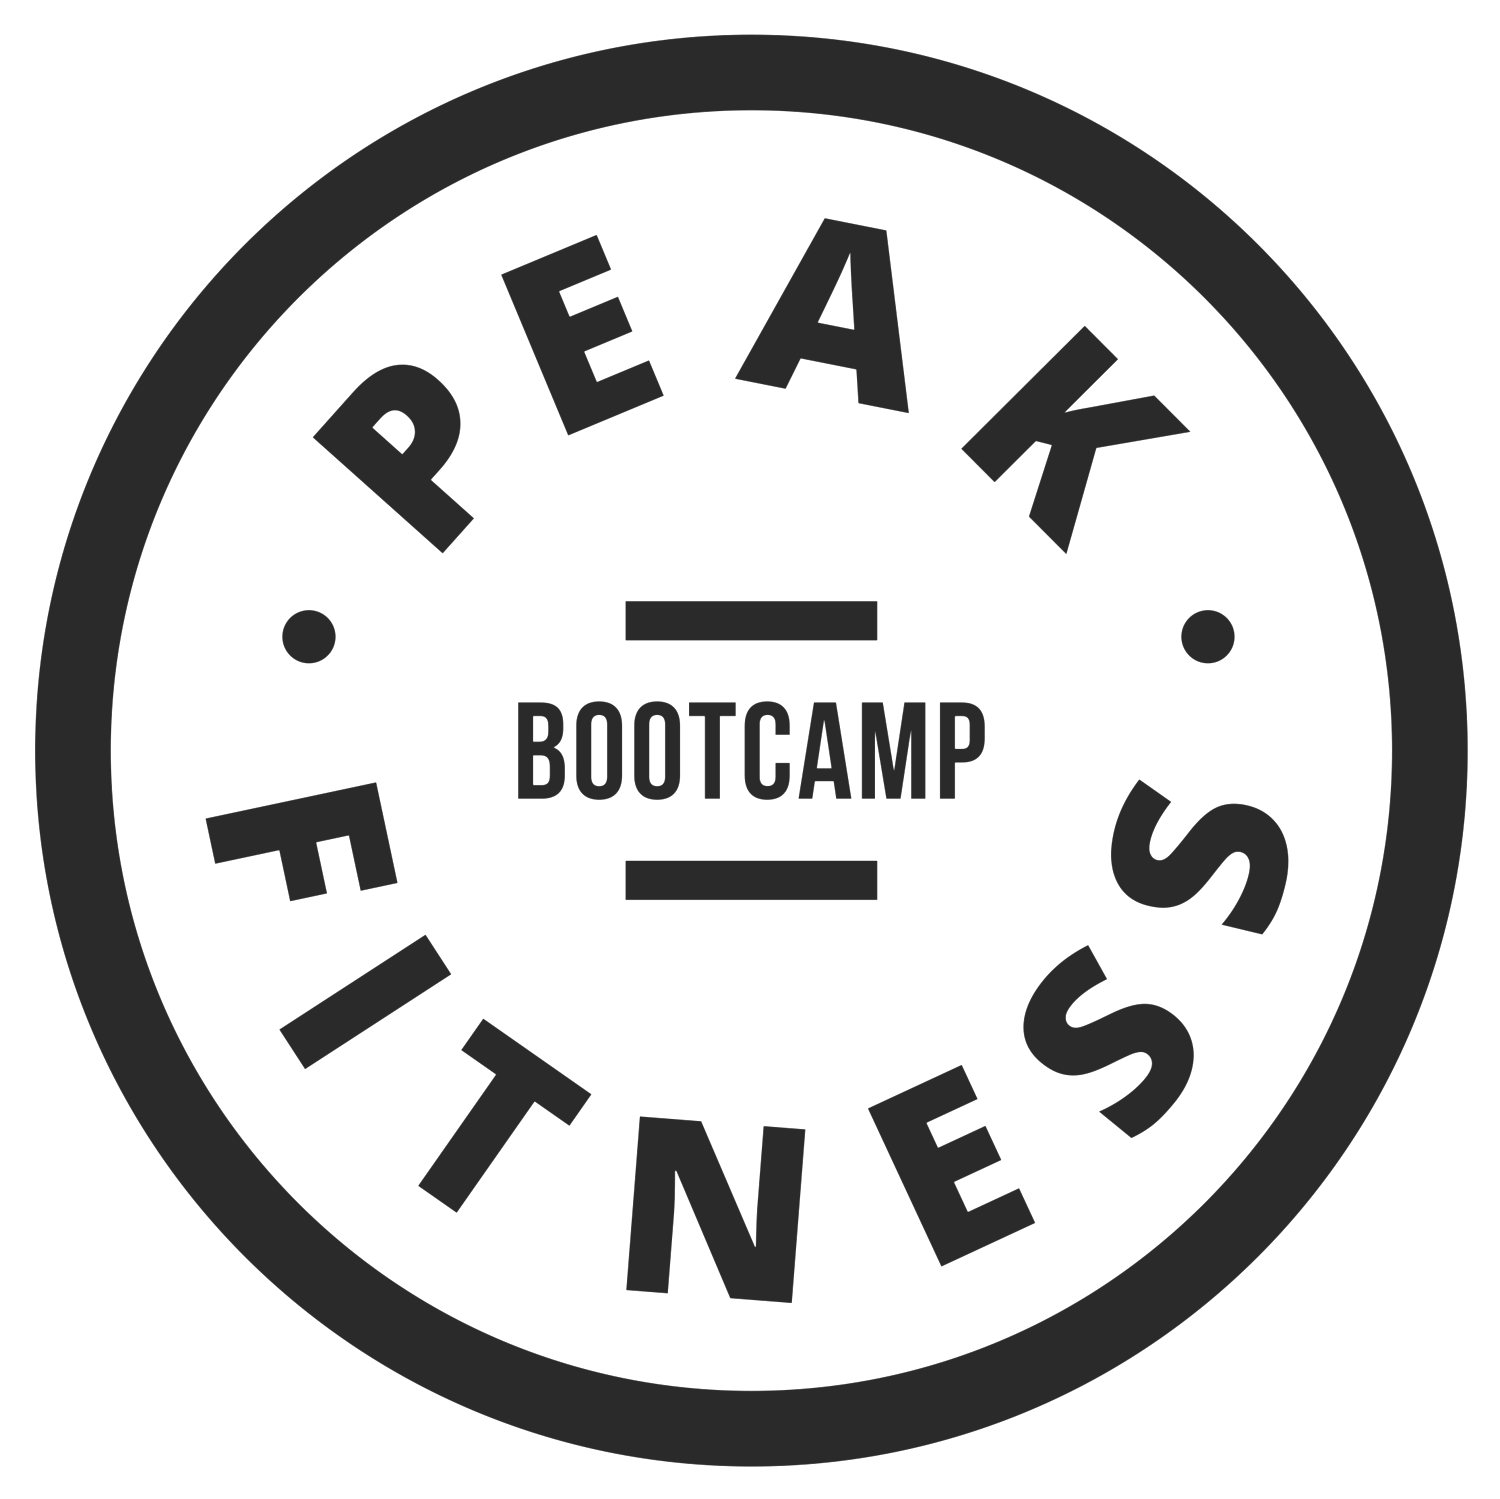 Peak Fitness Bootcamp